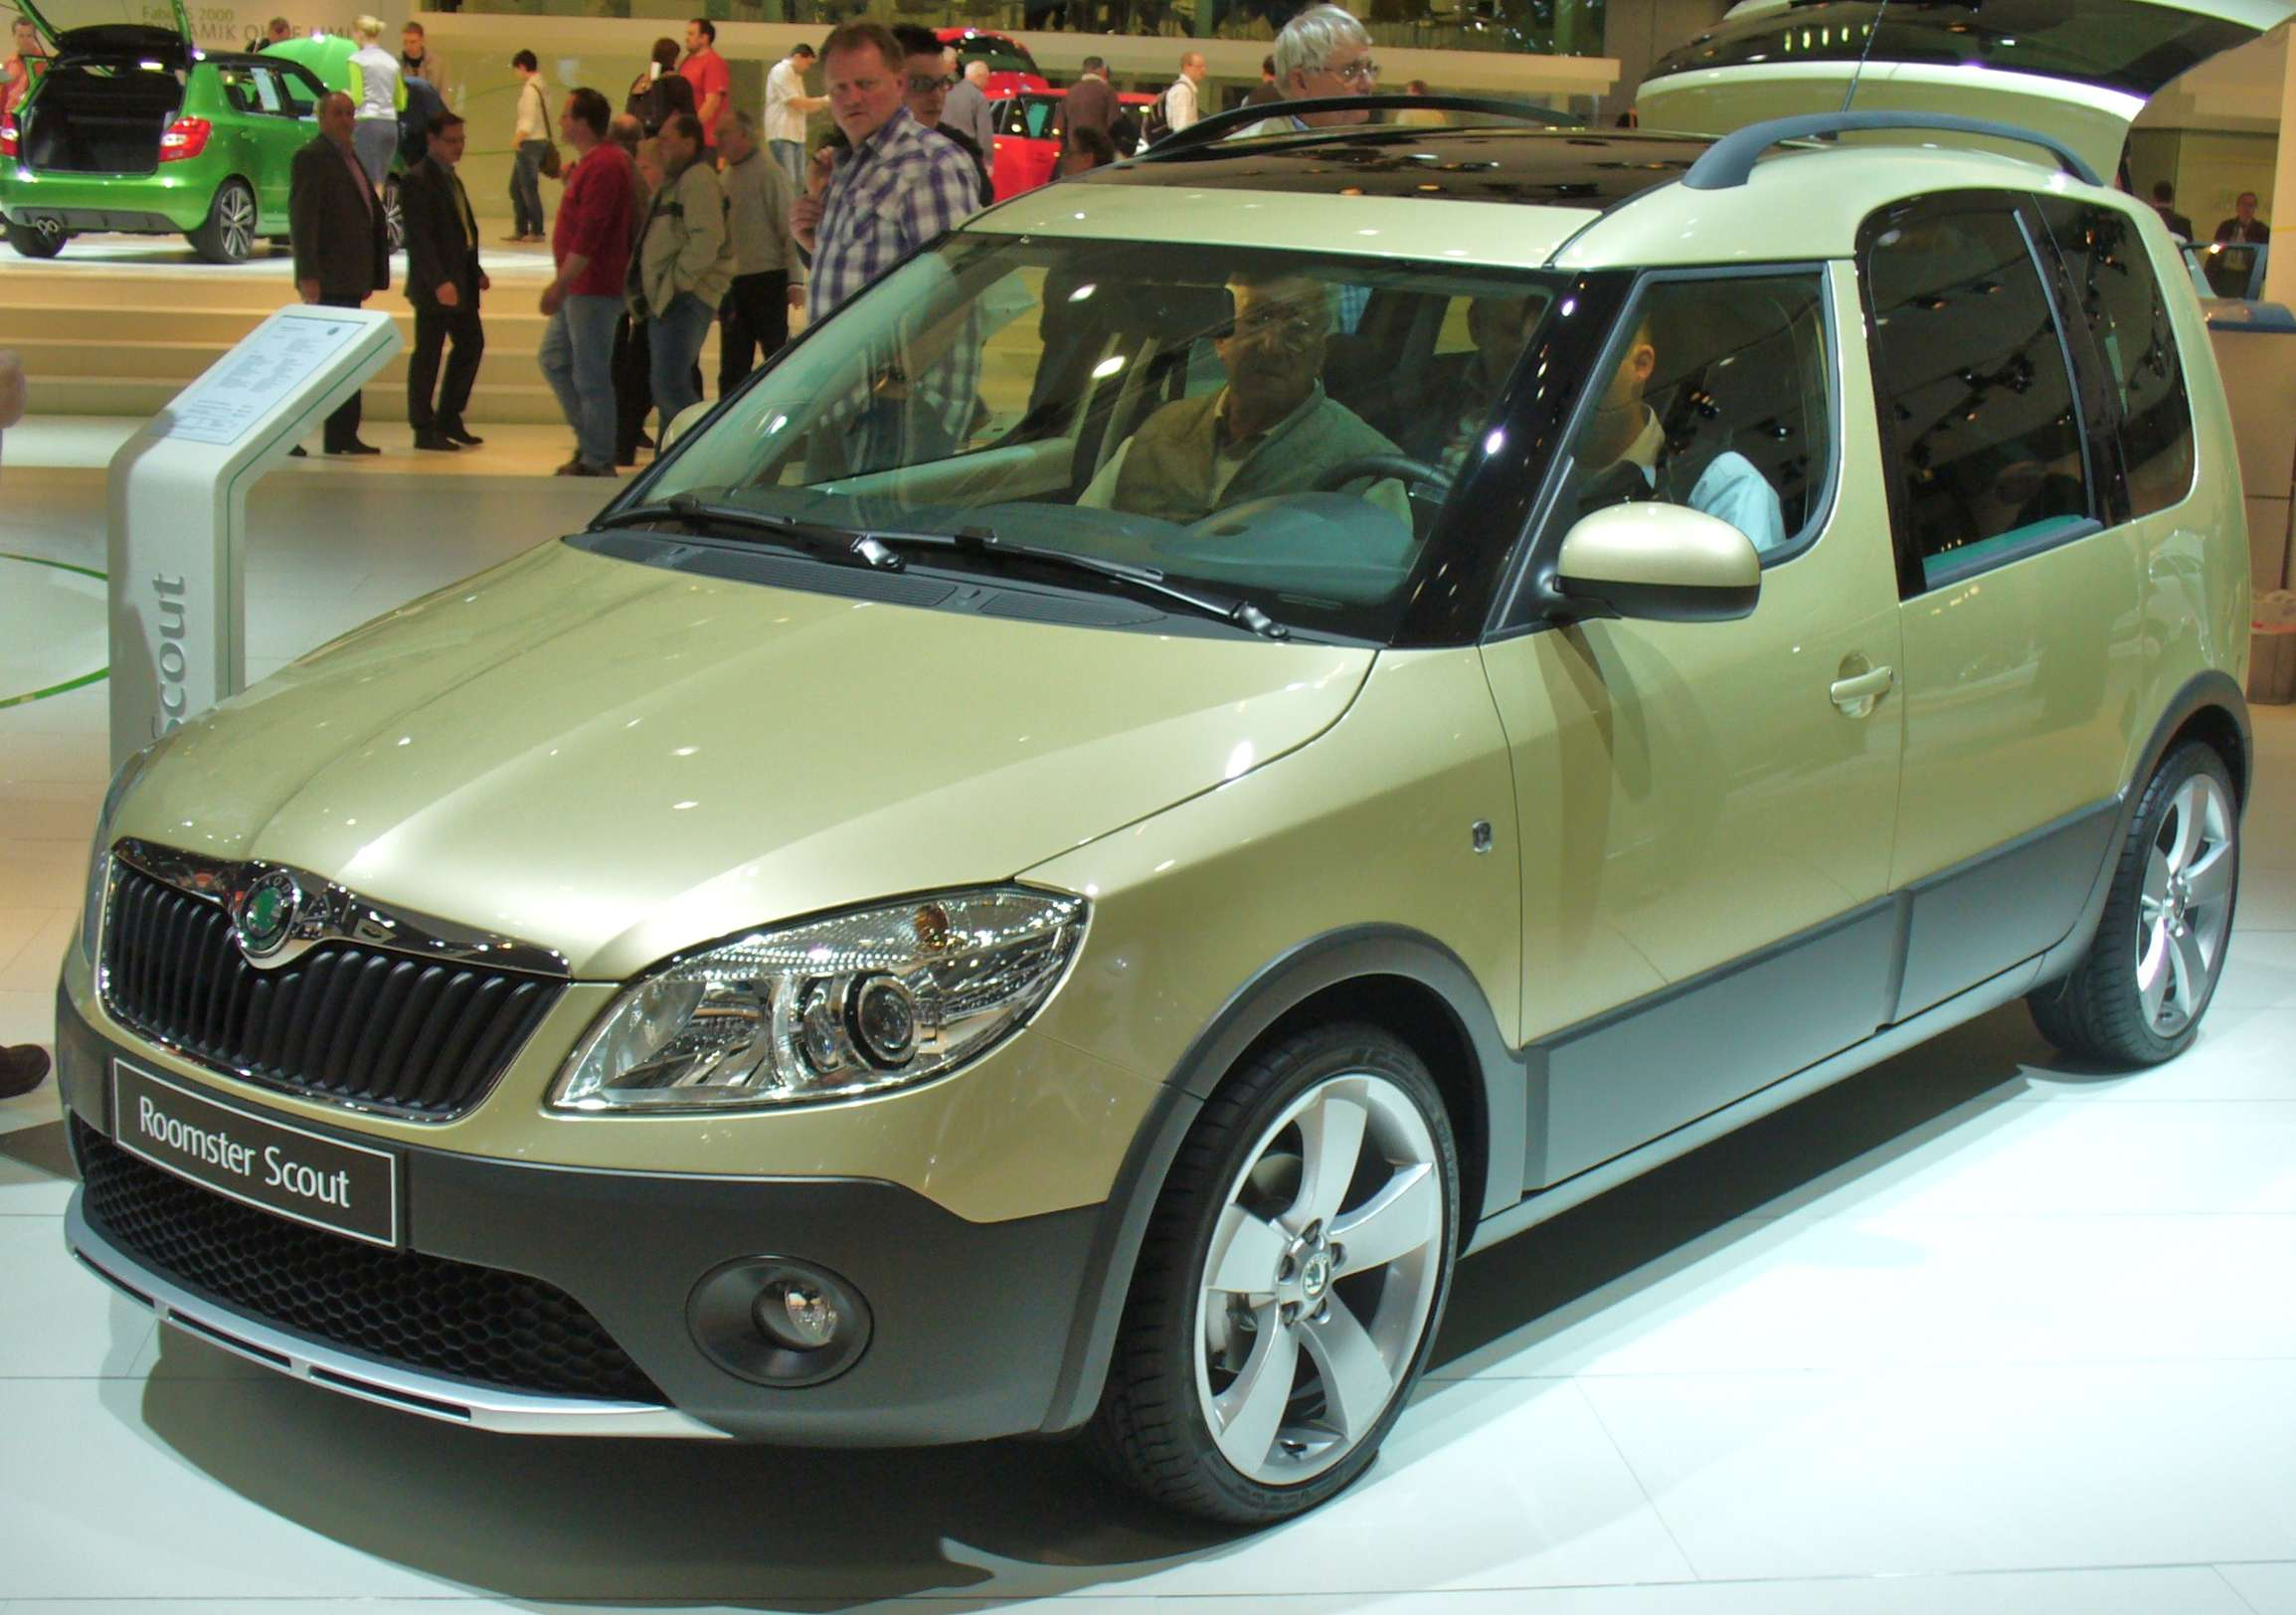 Skoda Roomster Scout #7885656